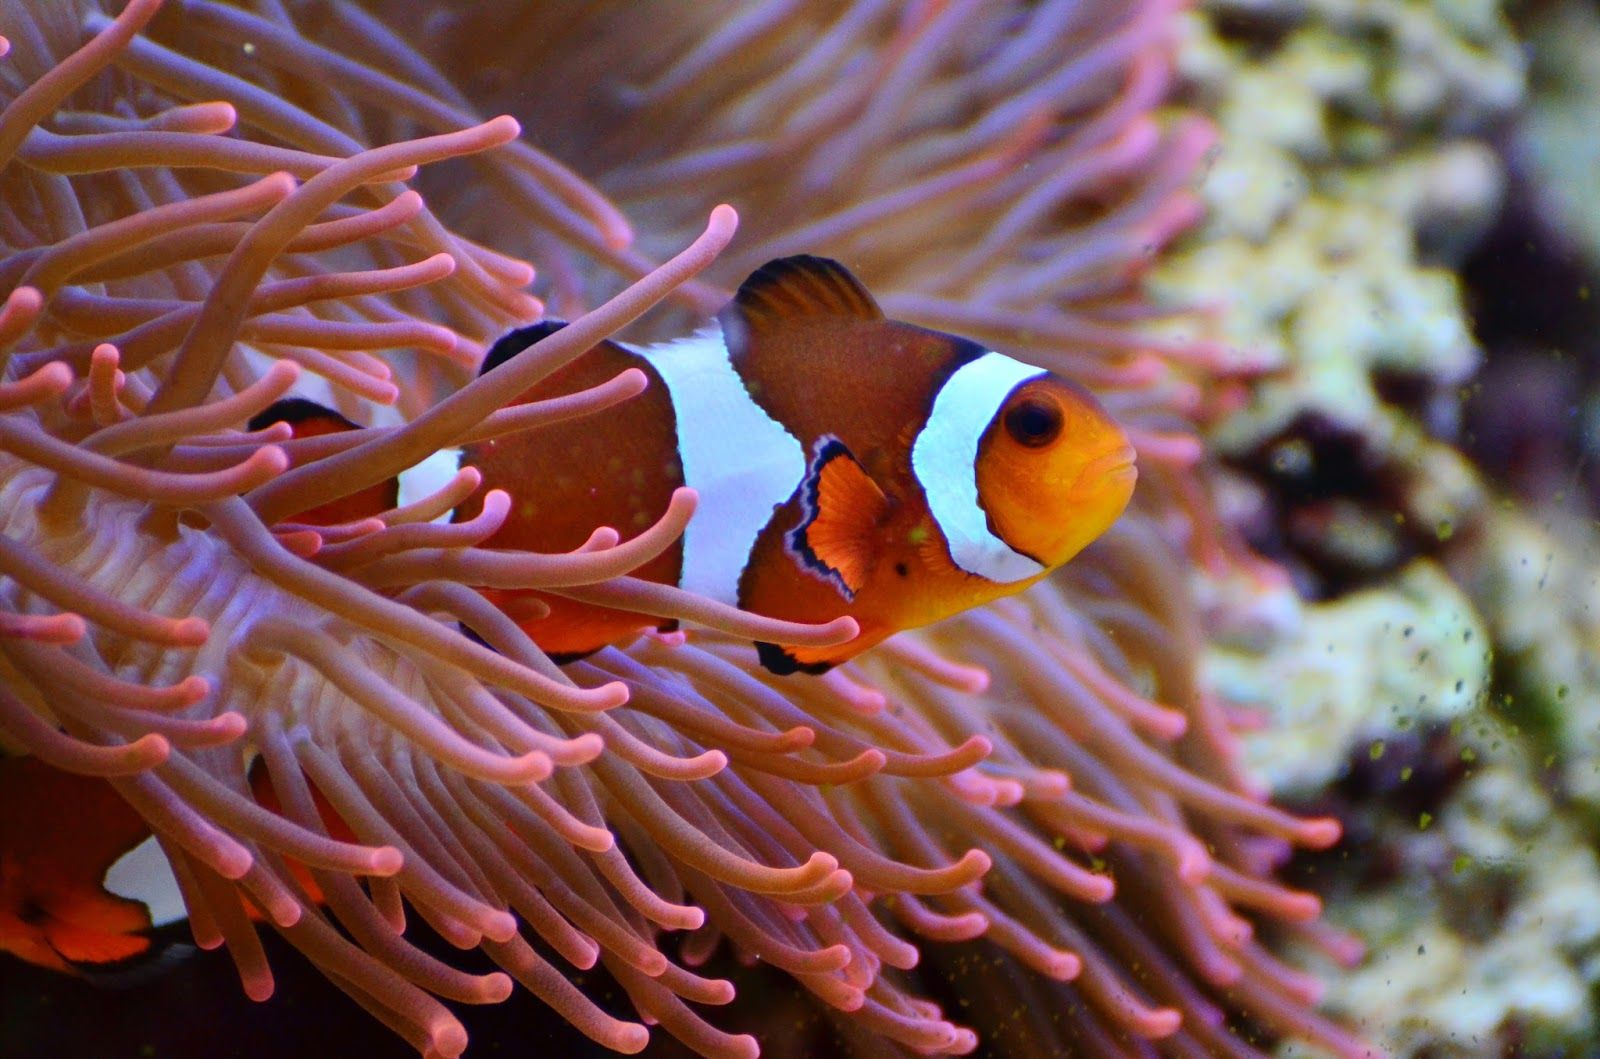 Why the poisonous anemone does not sting the clownfish? | Fish Facts ...